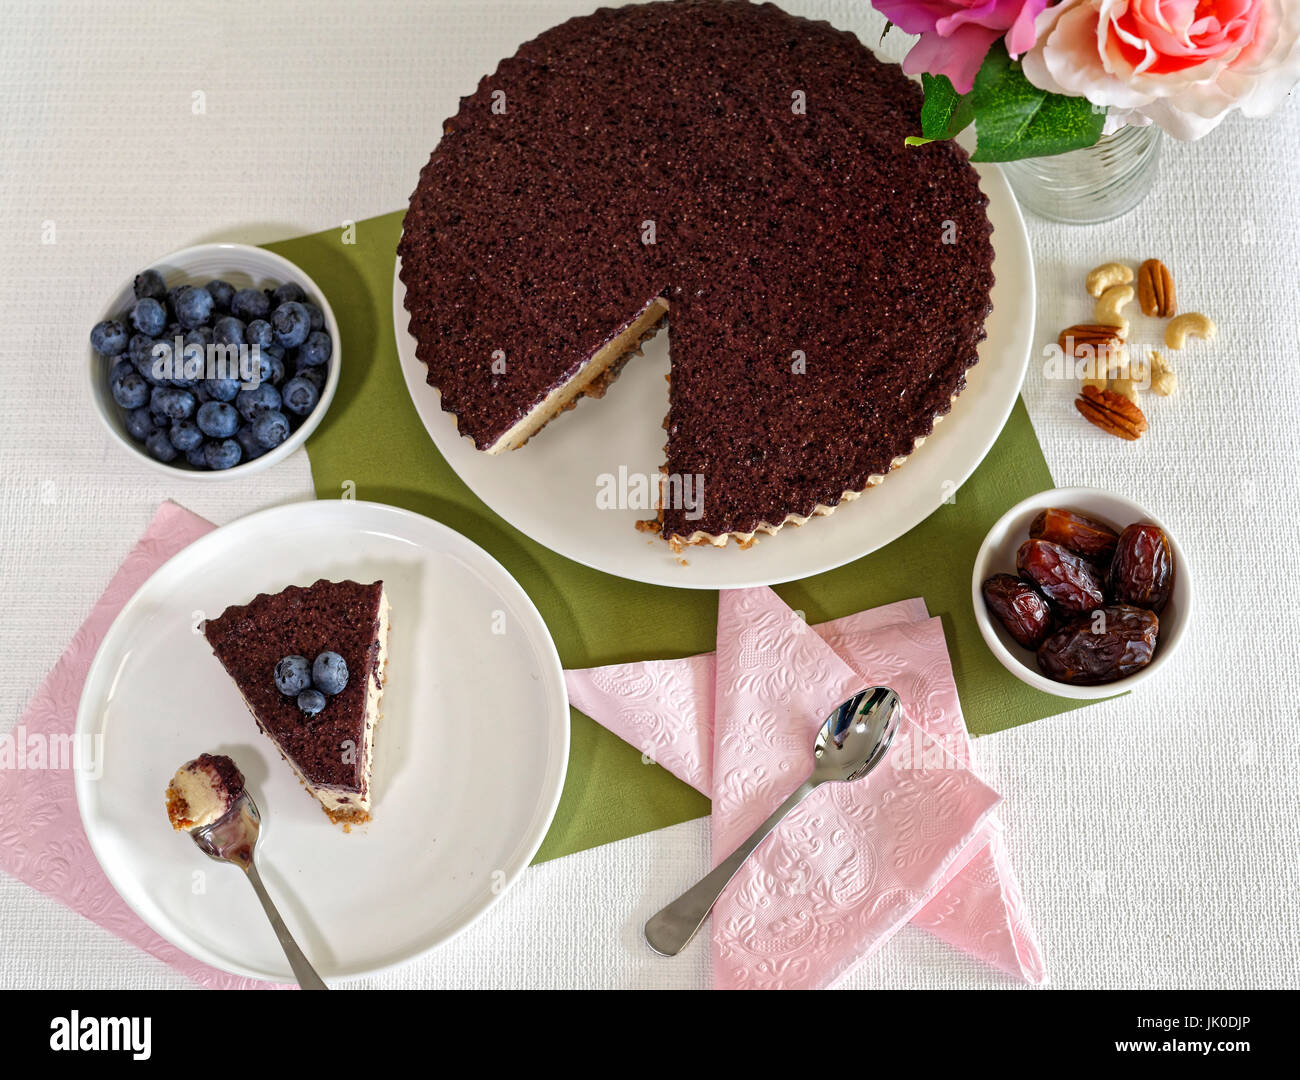 Vegan Cheesecake with blueberries, cashew nuts and dates - Stock Image